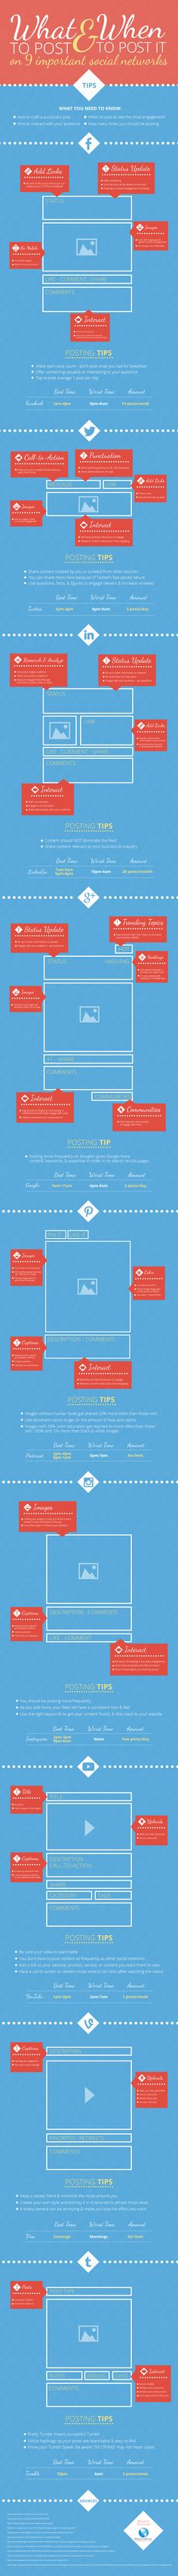 What to Post & When to Post it on 9 Important Social Networks [Infographic]